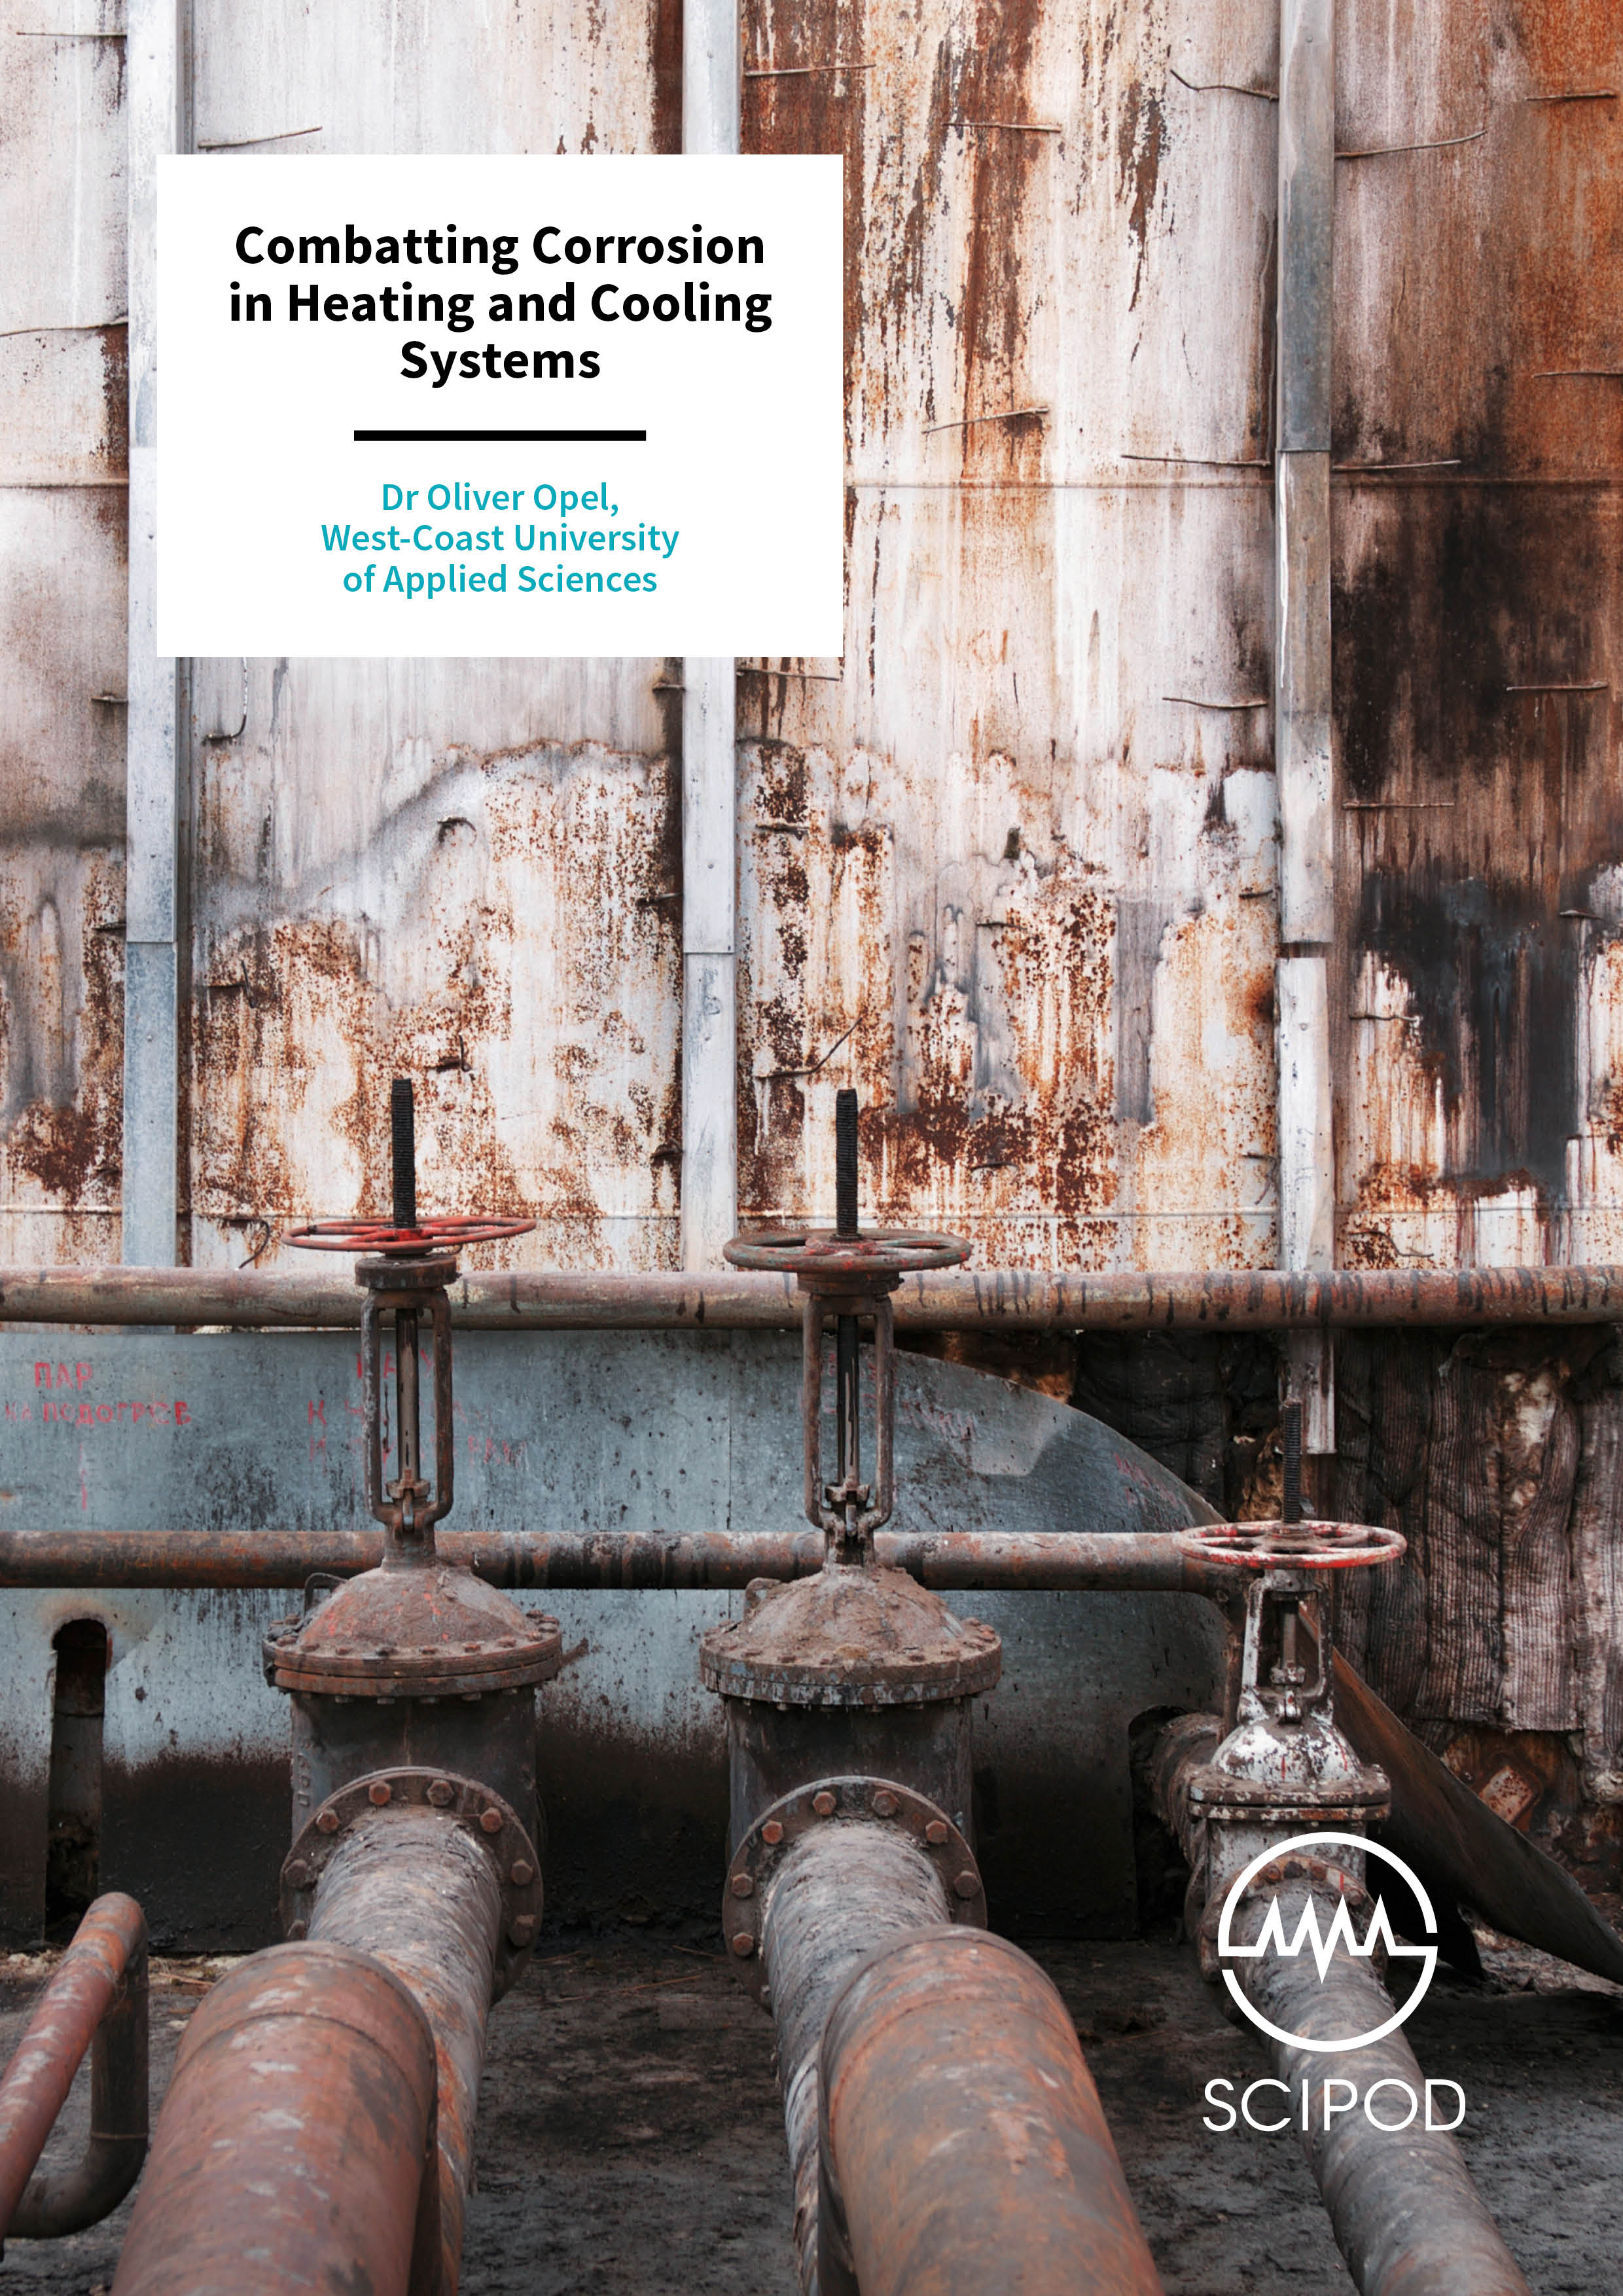 Combatting Corrosion in Heating and Cooling Systems – Dr Oliver Opel, West-Coast University of Applied Sciences